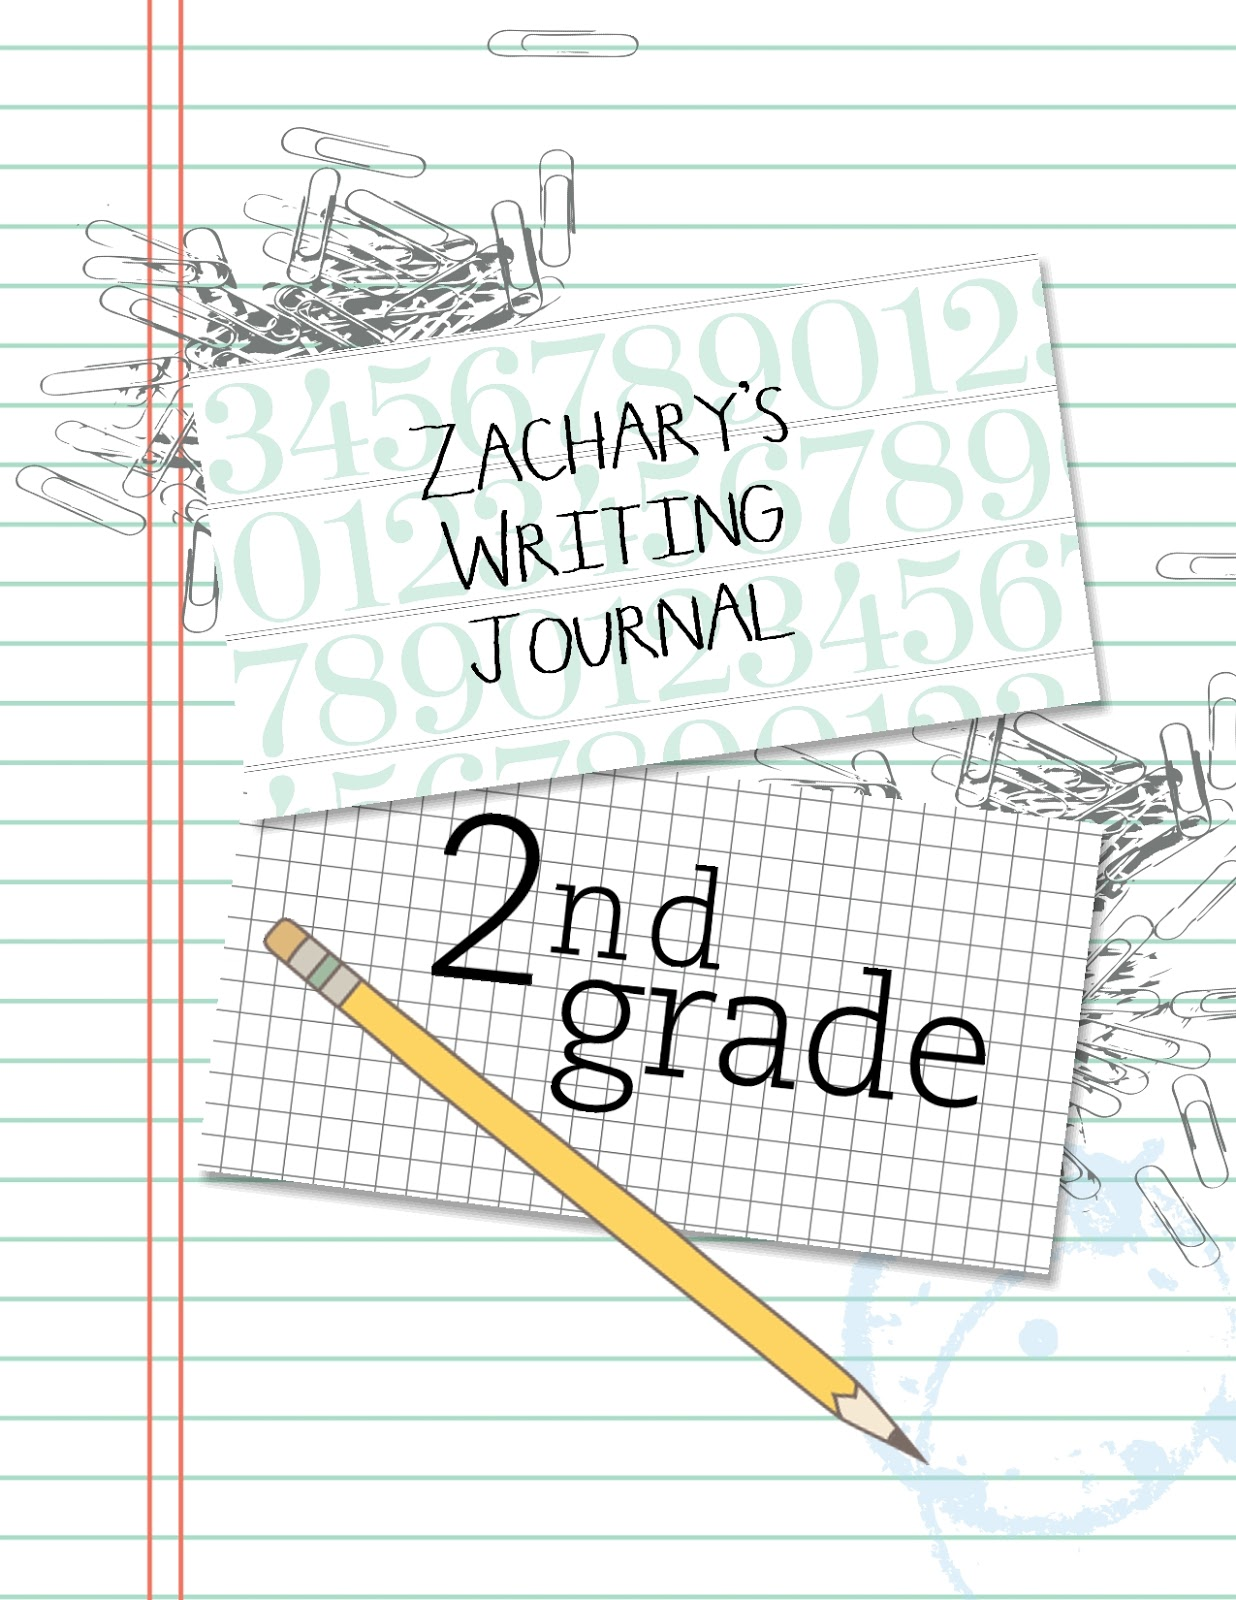 beth's digital cuts!: 2nd grade writing journal